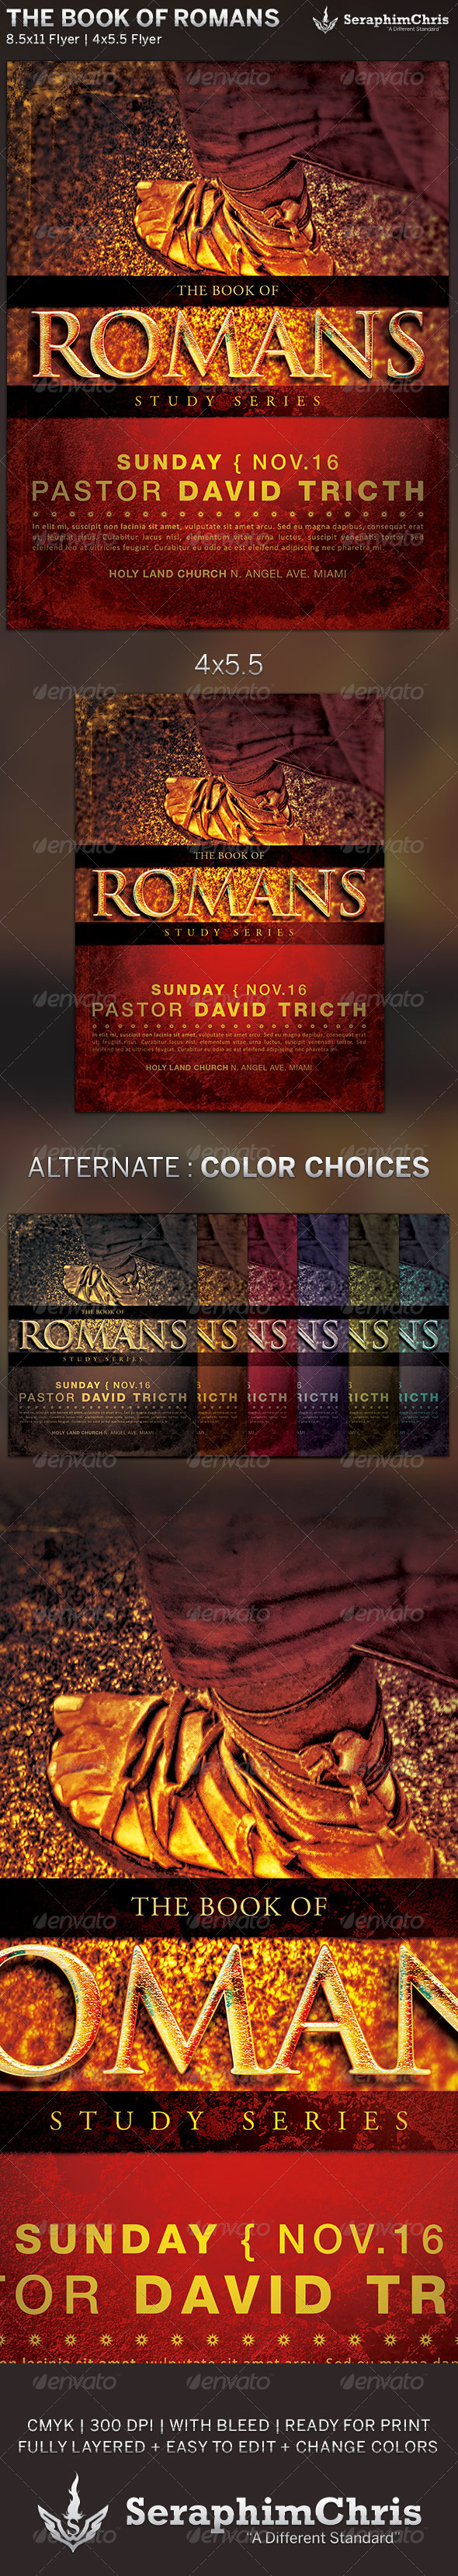 The Book of Romans Church Flyer Template